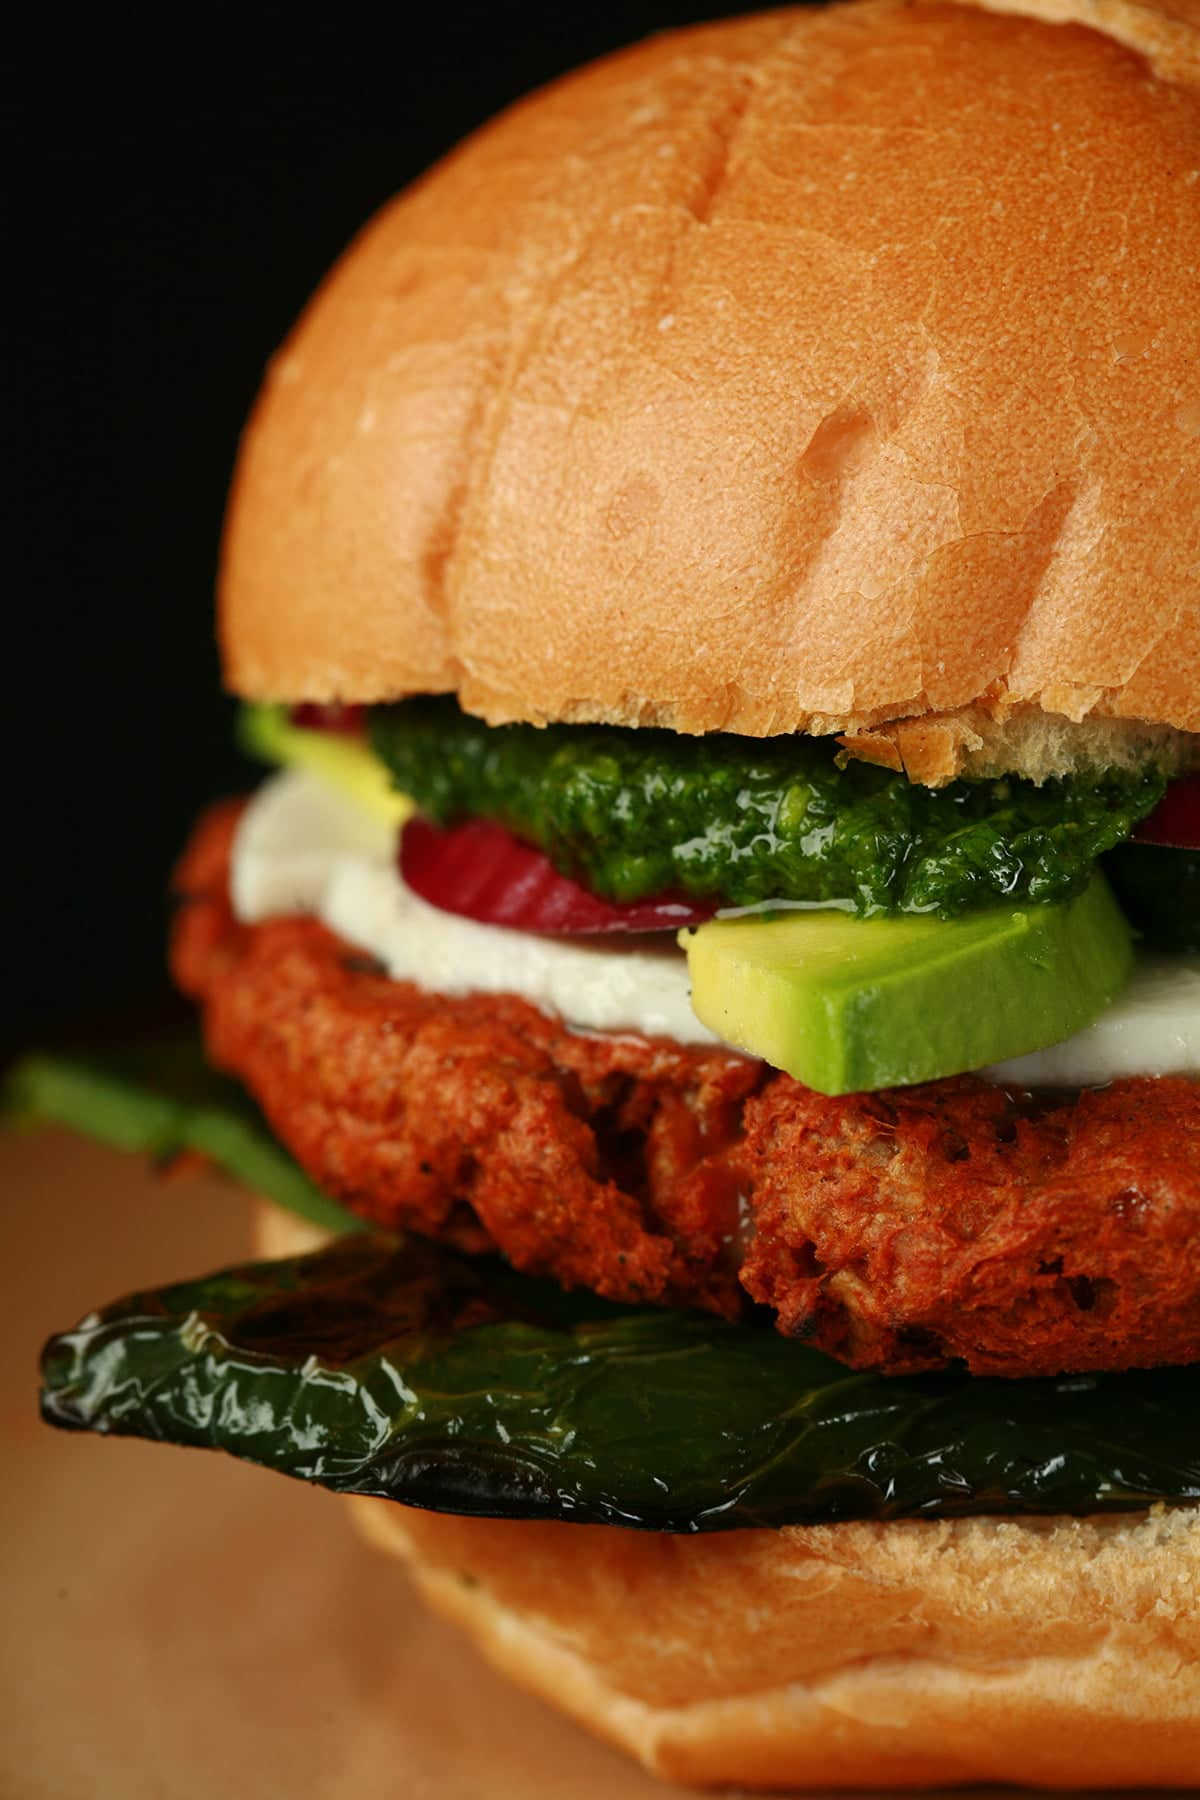 A close up view of a fully decked out vegetarian chorizo burger. Aside from the patty, a slice of roasted poblano, slices of red onion, a white cheese, and avocados are seen. A deep green cilantro pesto tops it all off.